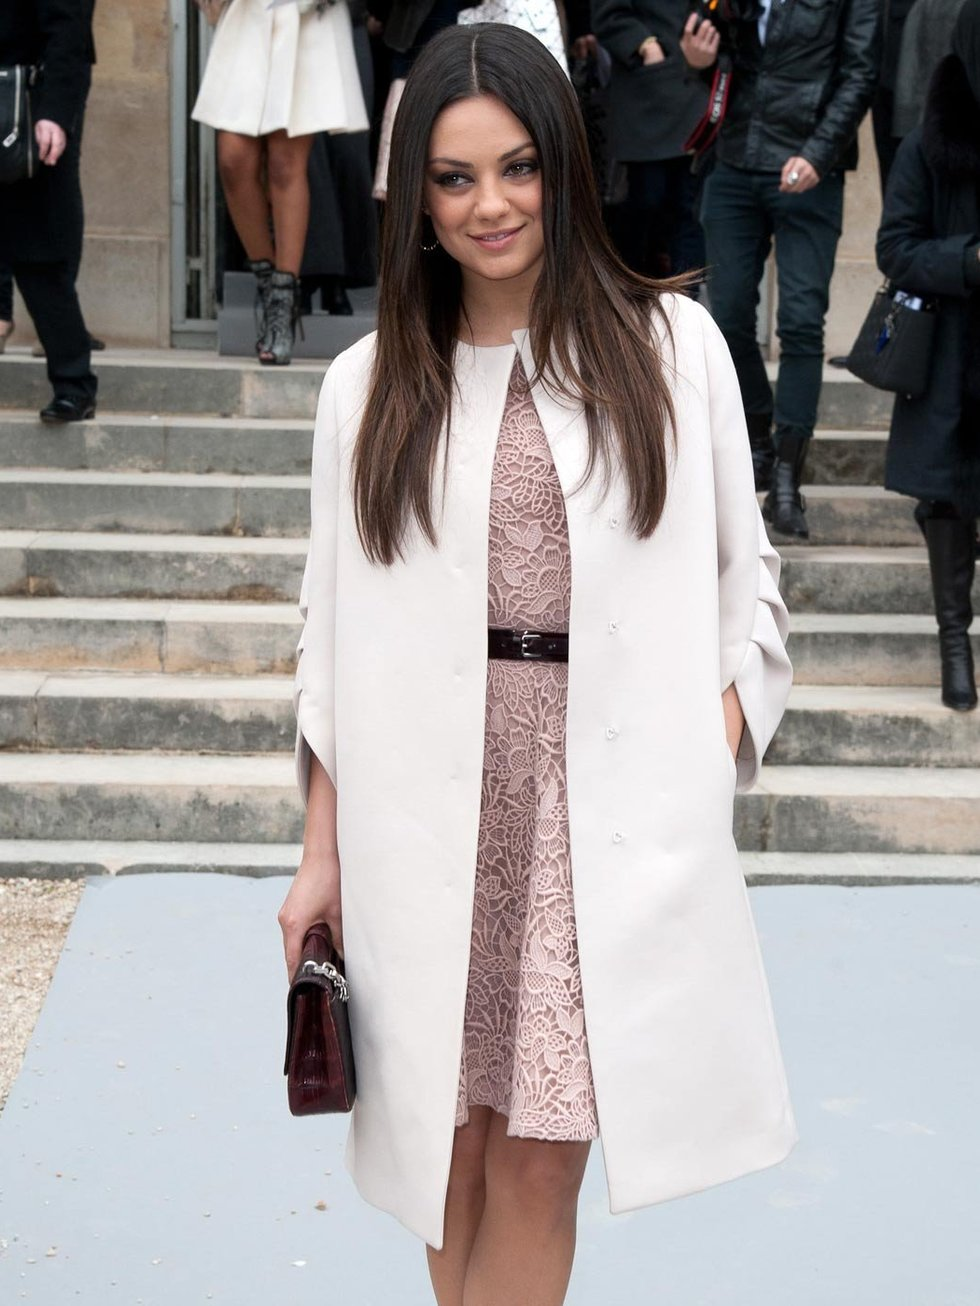 Mila Kunis Fashion Style Images Galleries With A Bite